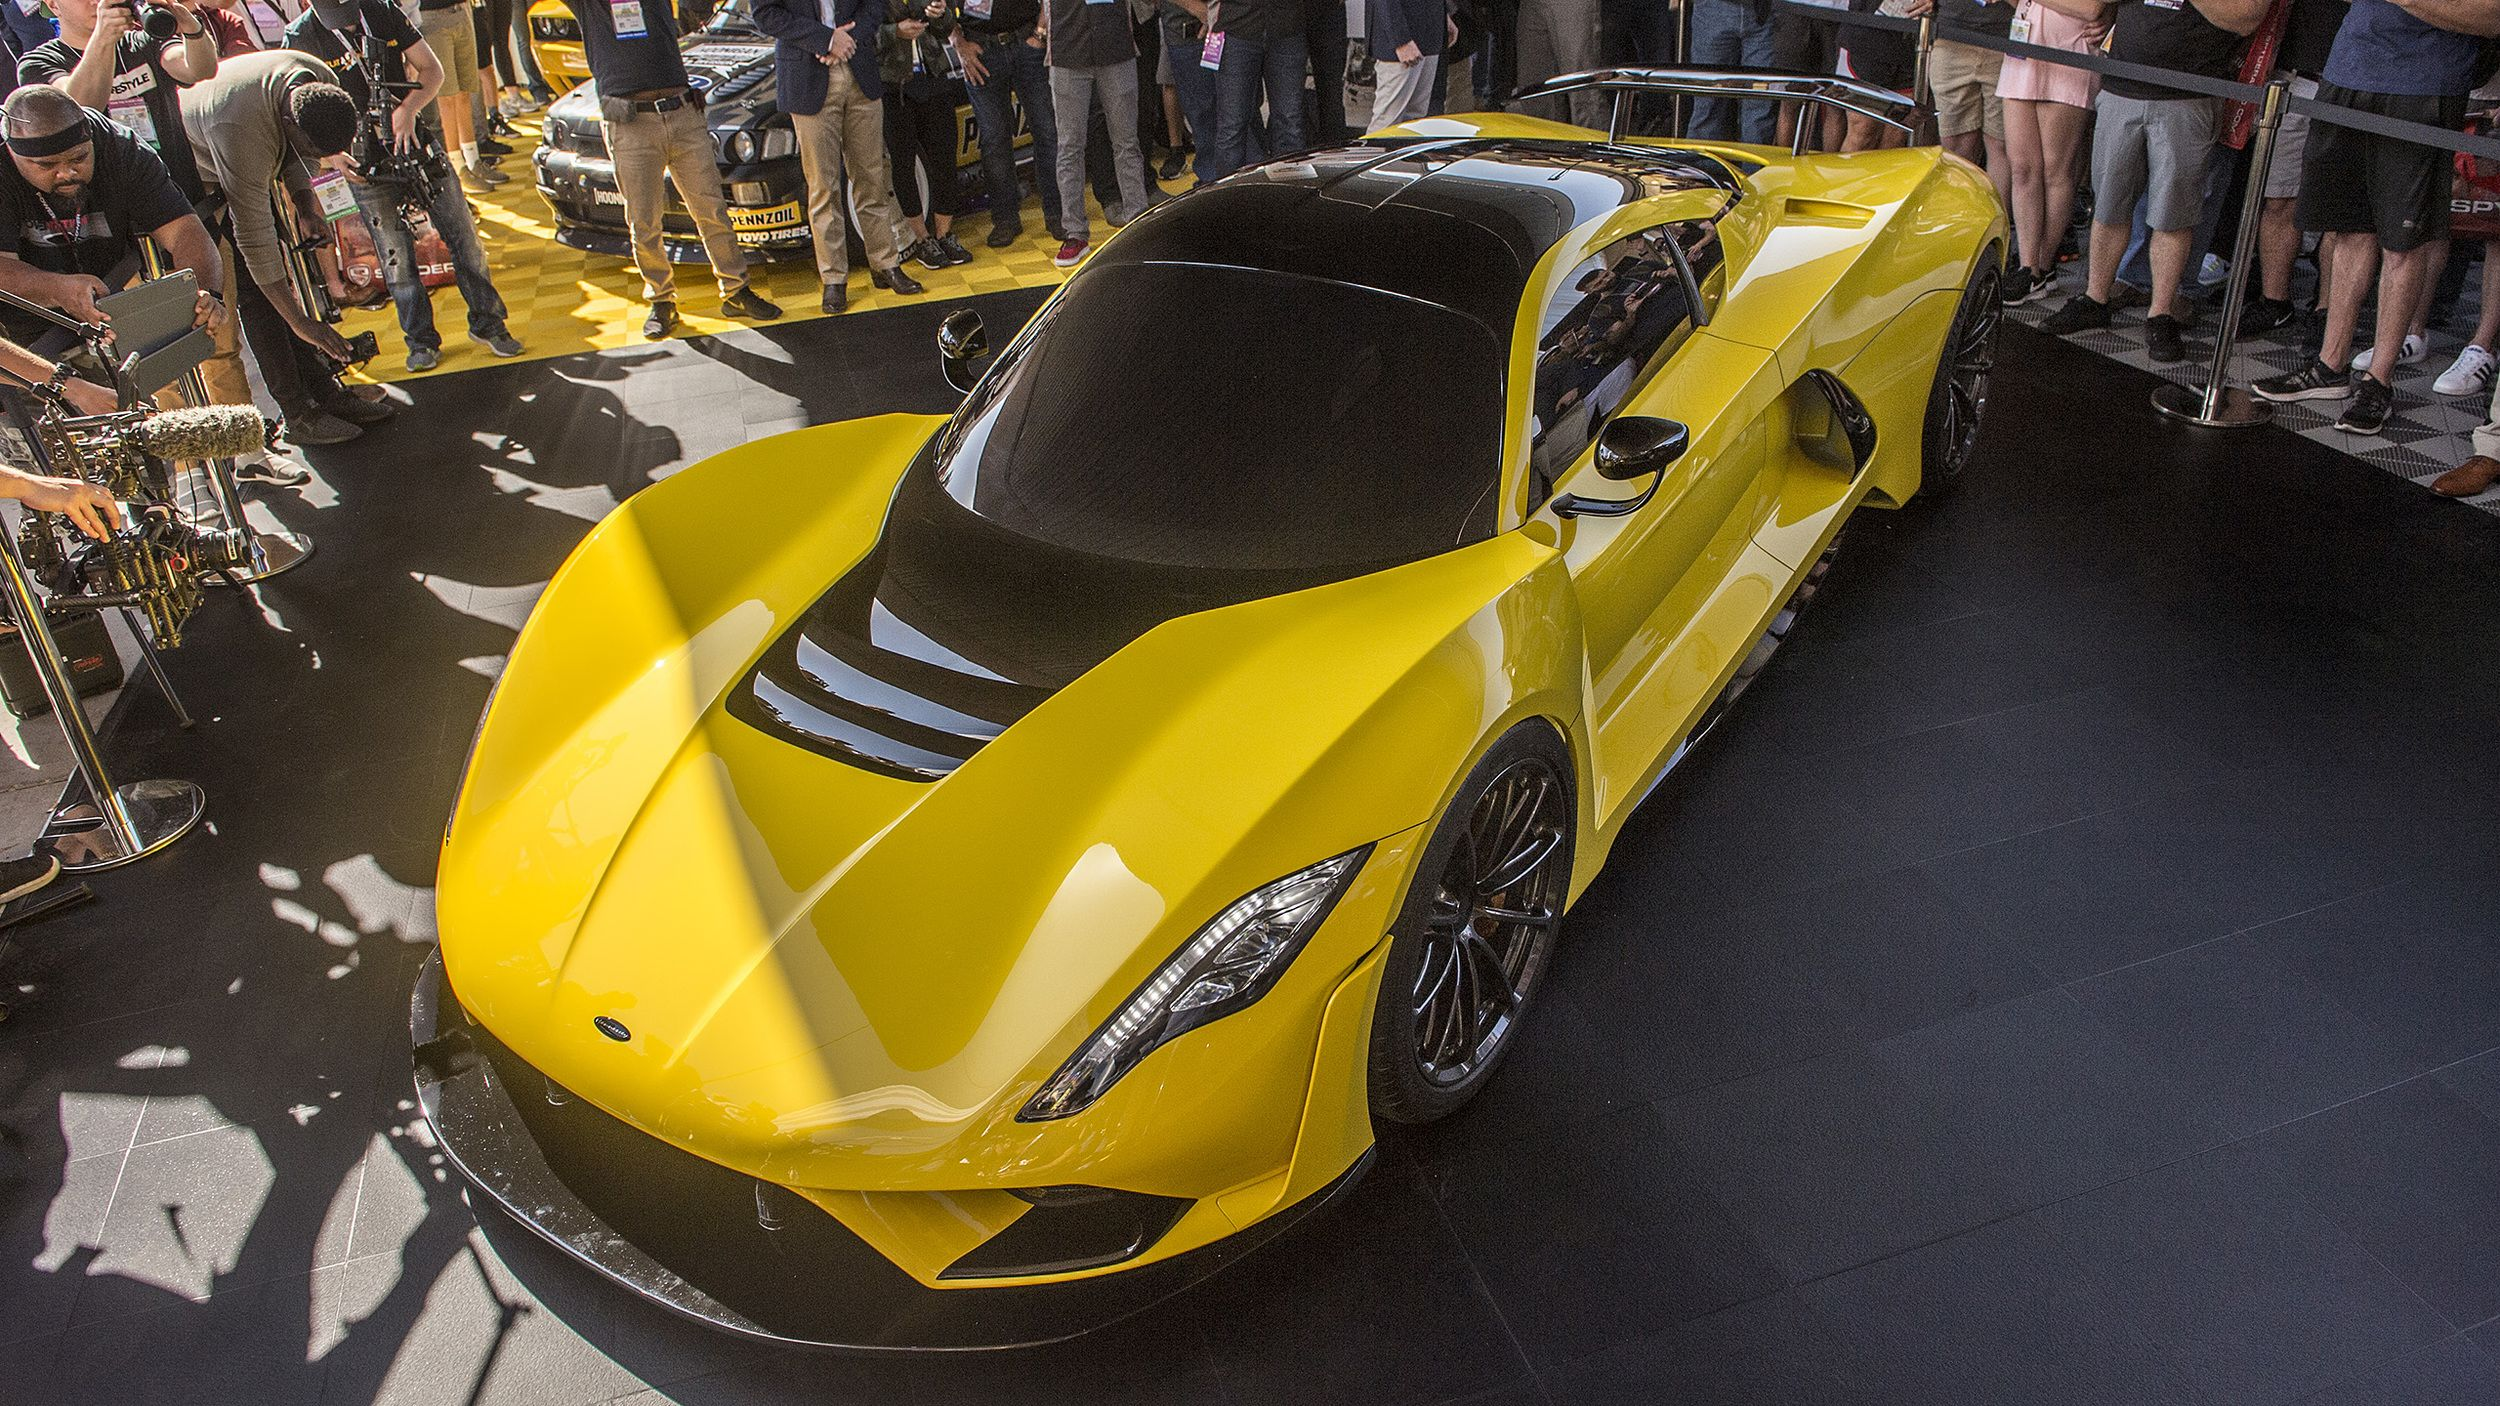 Hennessey Unveiled Its Freaking Awesome 1600 Hp Venom F5 At Sema Hennessey Car Show Sema Car Show